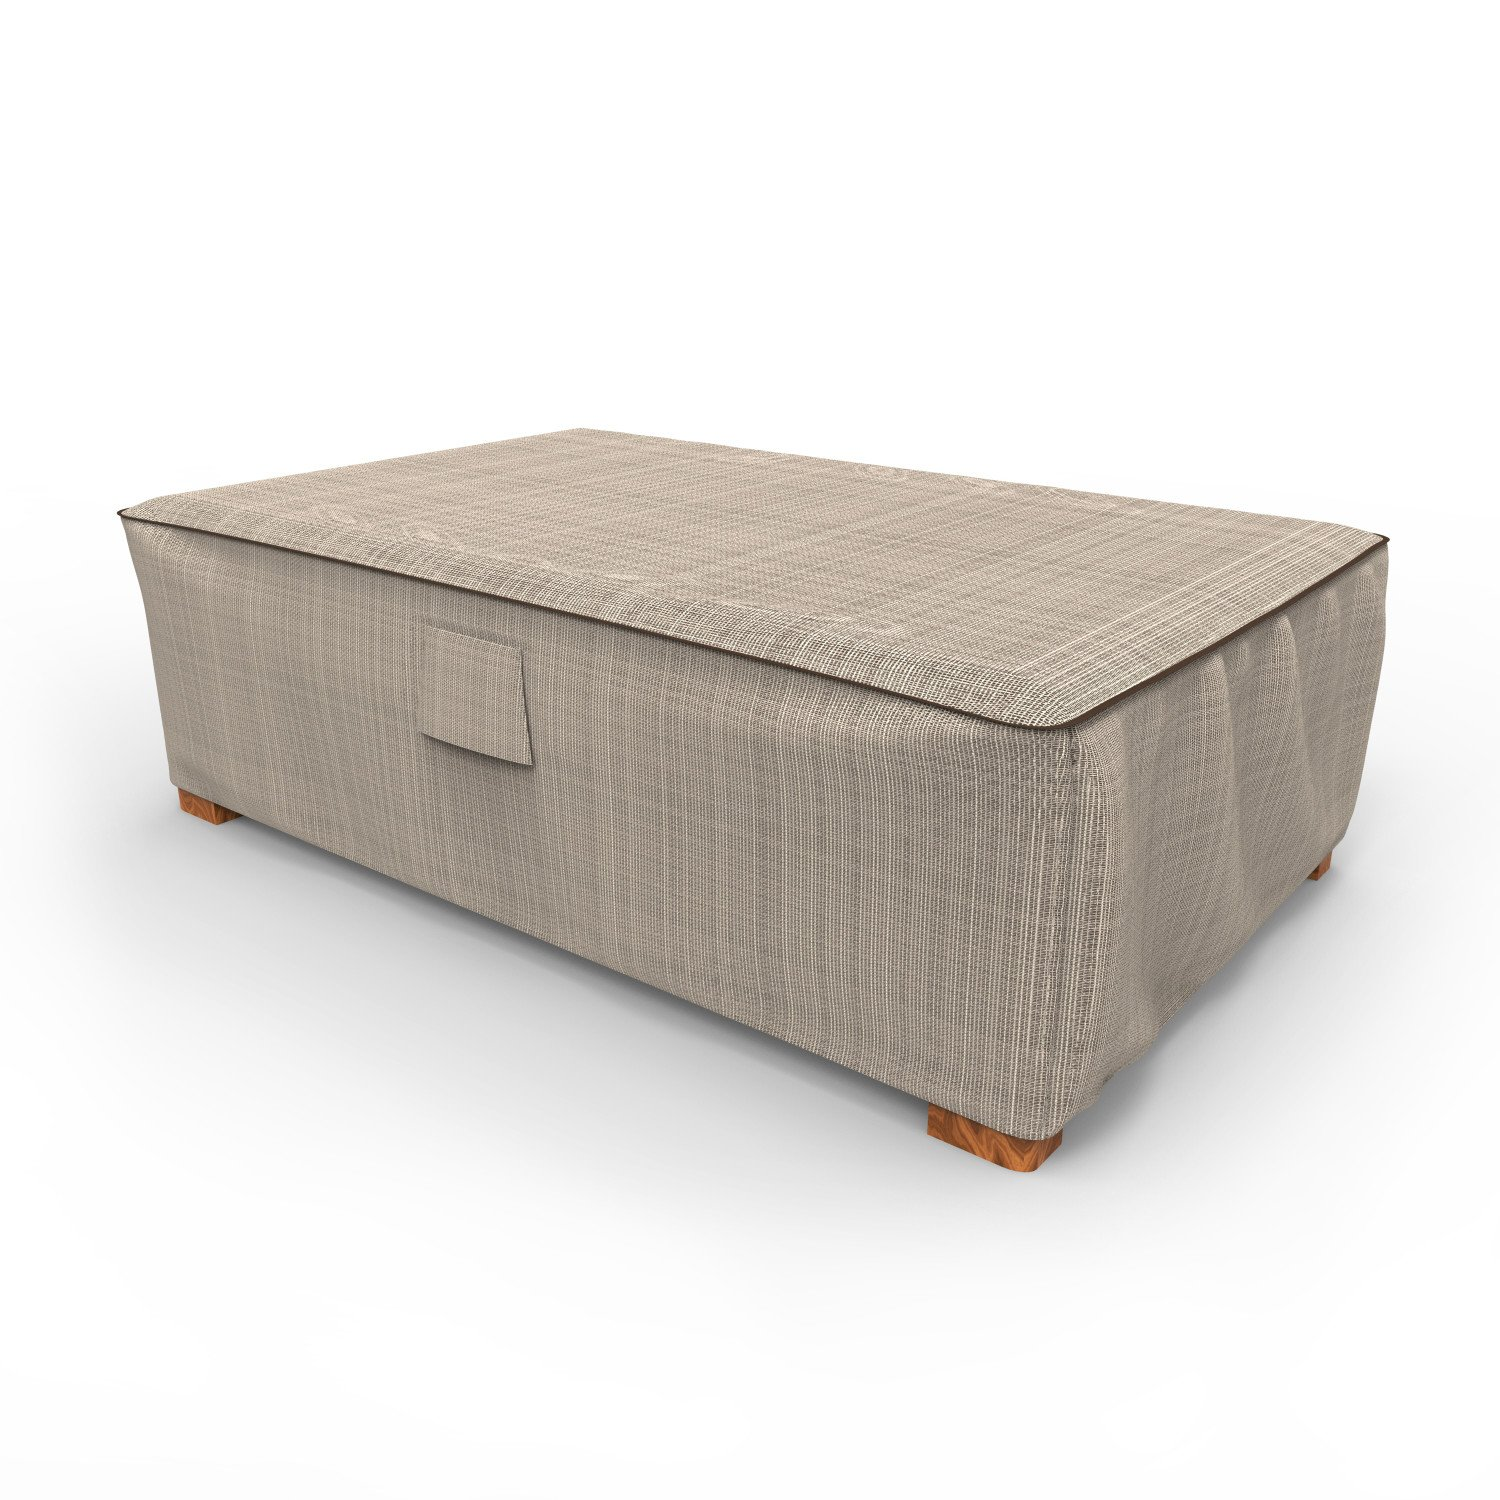 Budge English Garden Patio Ottoman Cover / Coffee Table Cover, Large (Tan Tweed)